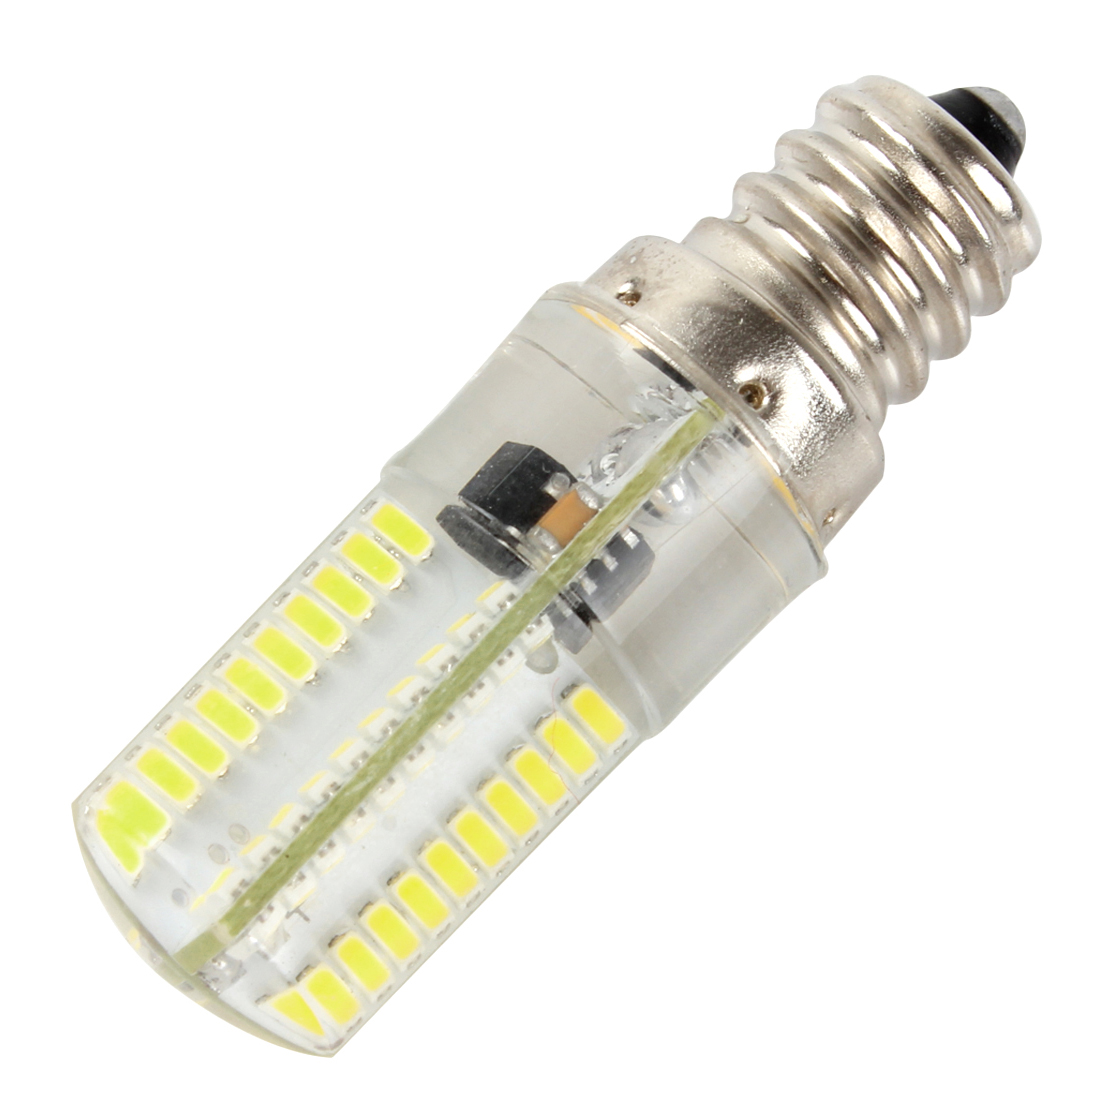 Wholesale Dimmable E12 White Warm White 80 Led 3014 Smd Light Silicone Crystal Bulb Lamp 110v 220v